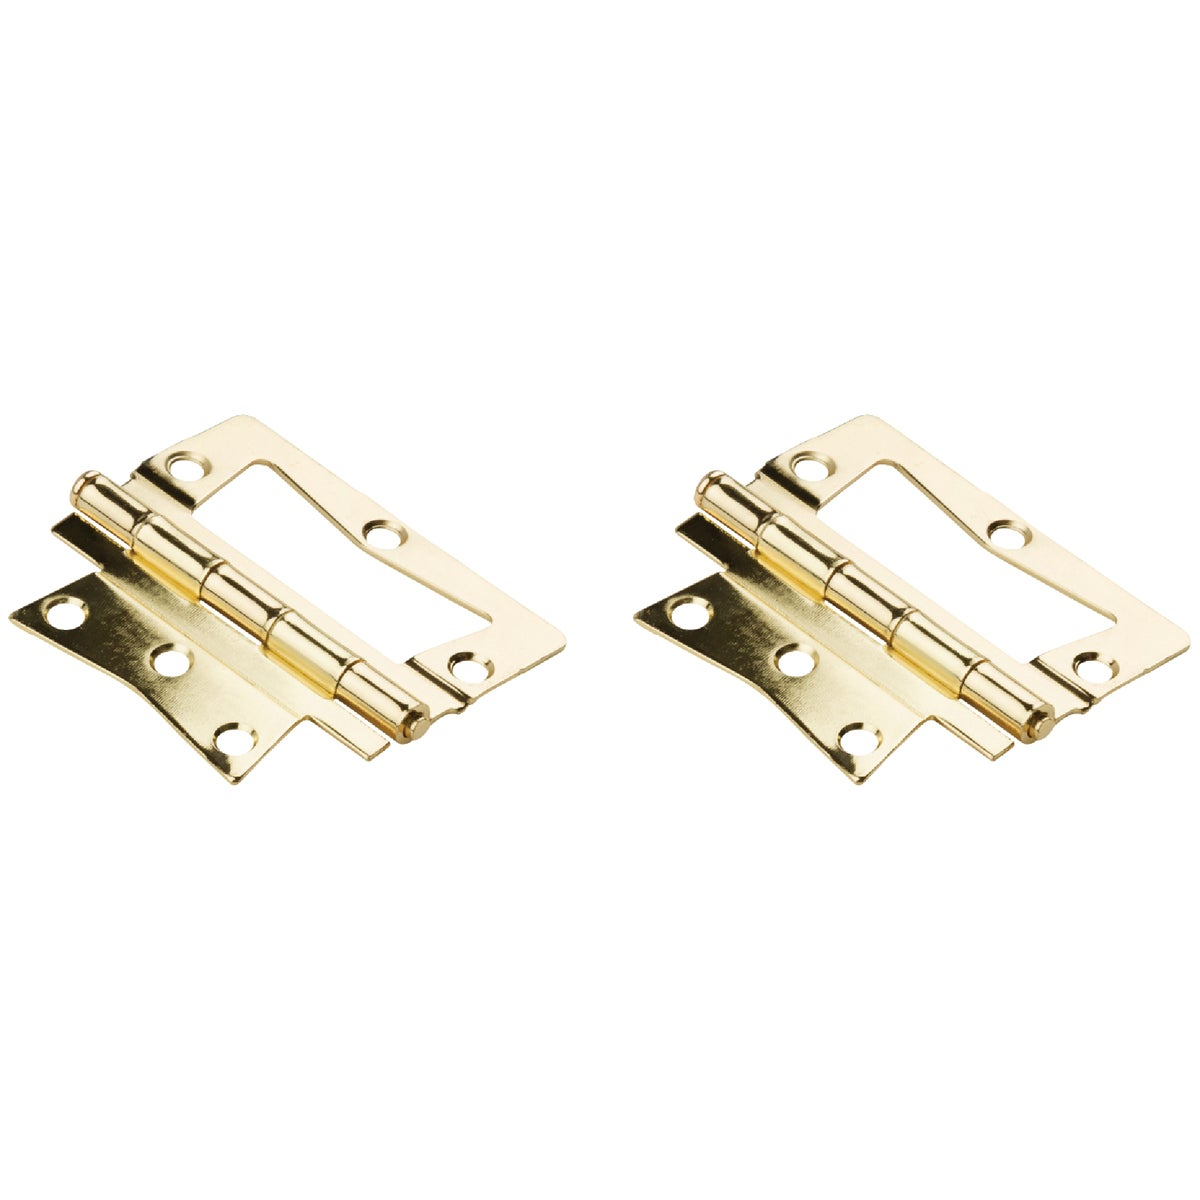 "3-1/2"" NONMORTISE HINGE - N244806 by National Mfg Co"